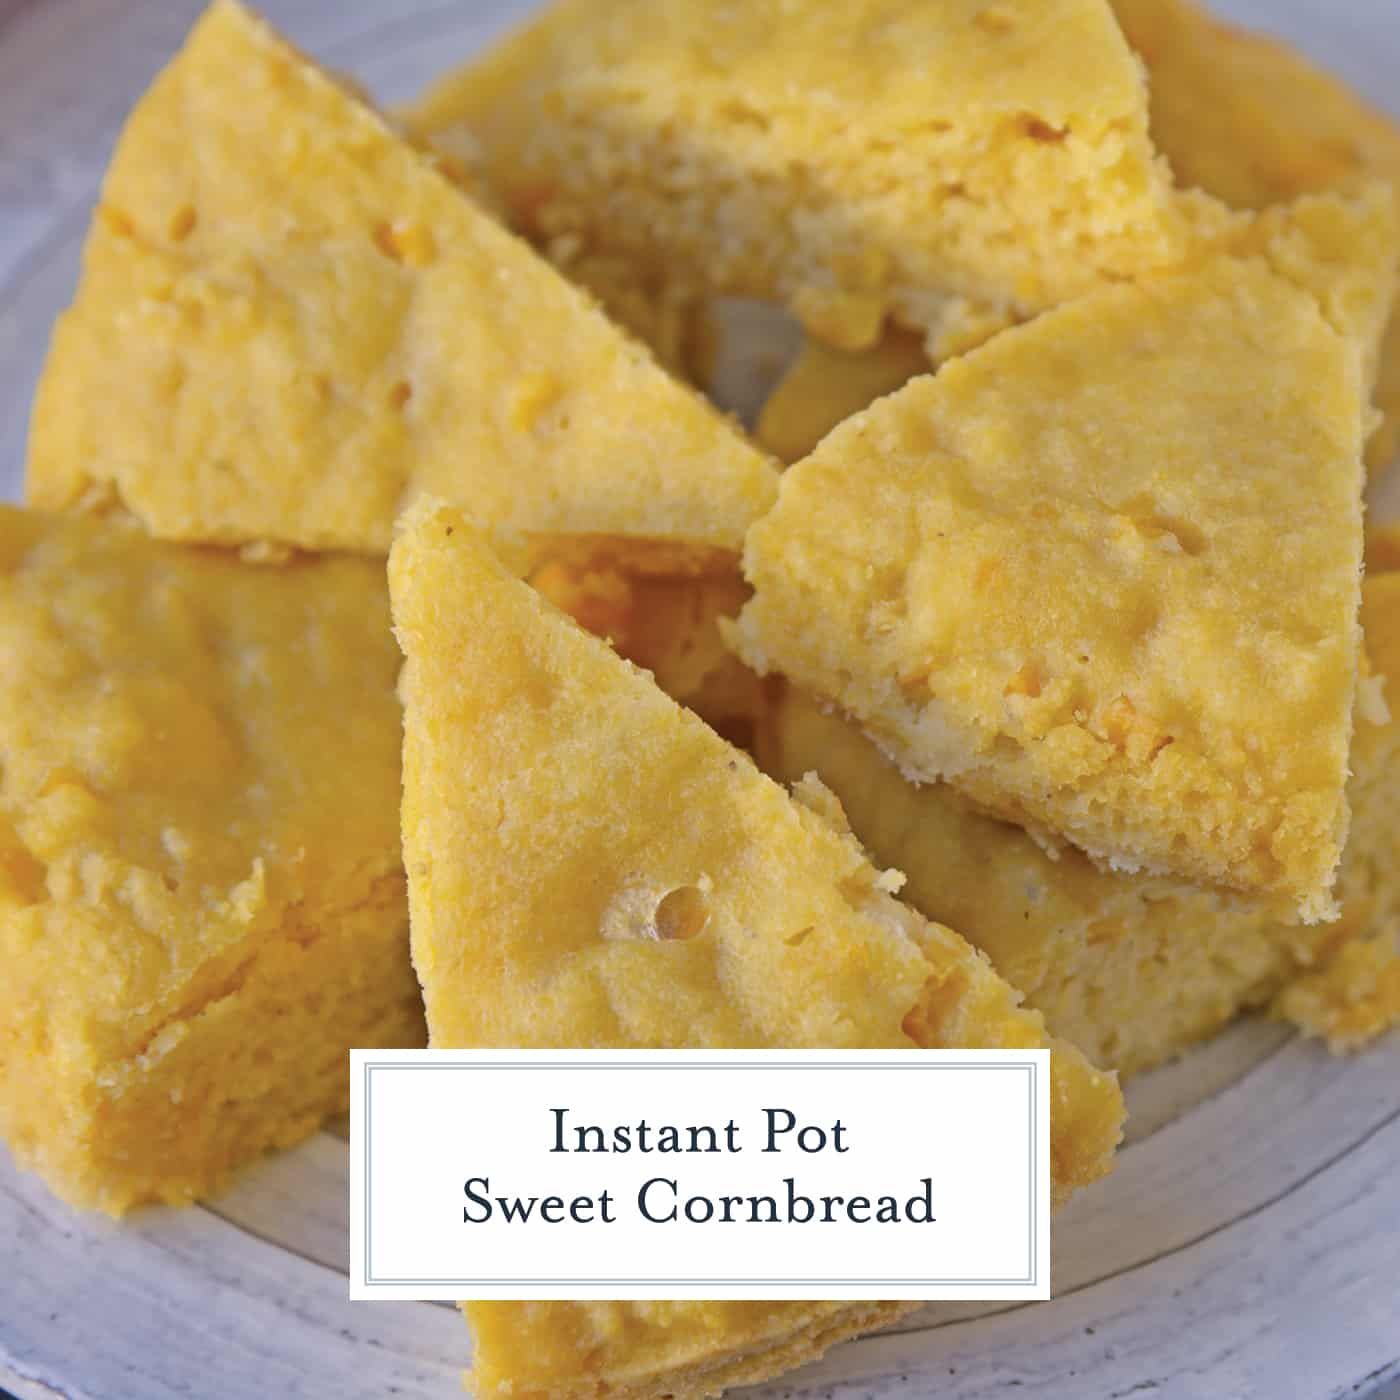 Instant Pot Sweet Cornbread is an easy cornbread recipe made with honey making it both sweet and moist. Made in the Instant Pot, it cooks in half the time! #cornbreadrecipe #instantpotrecipes #sweetcornbread www.savoryexperiments.com